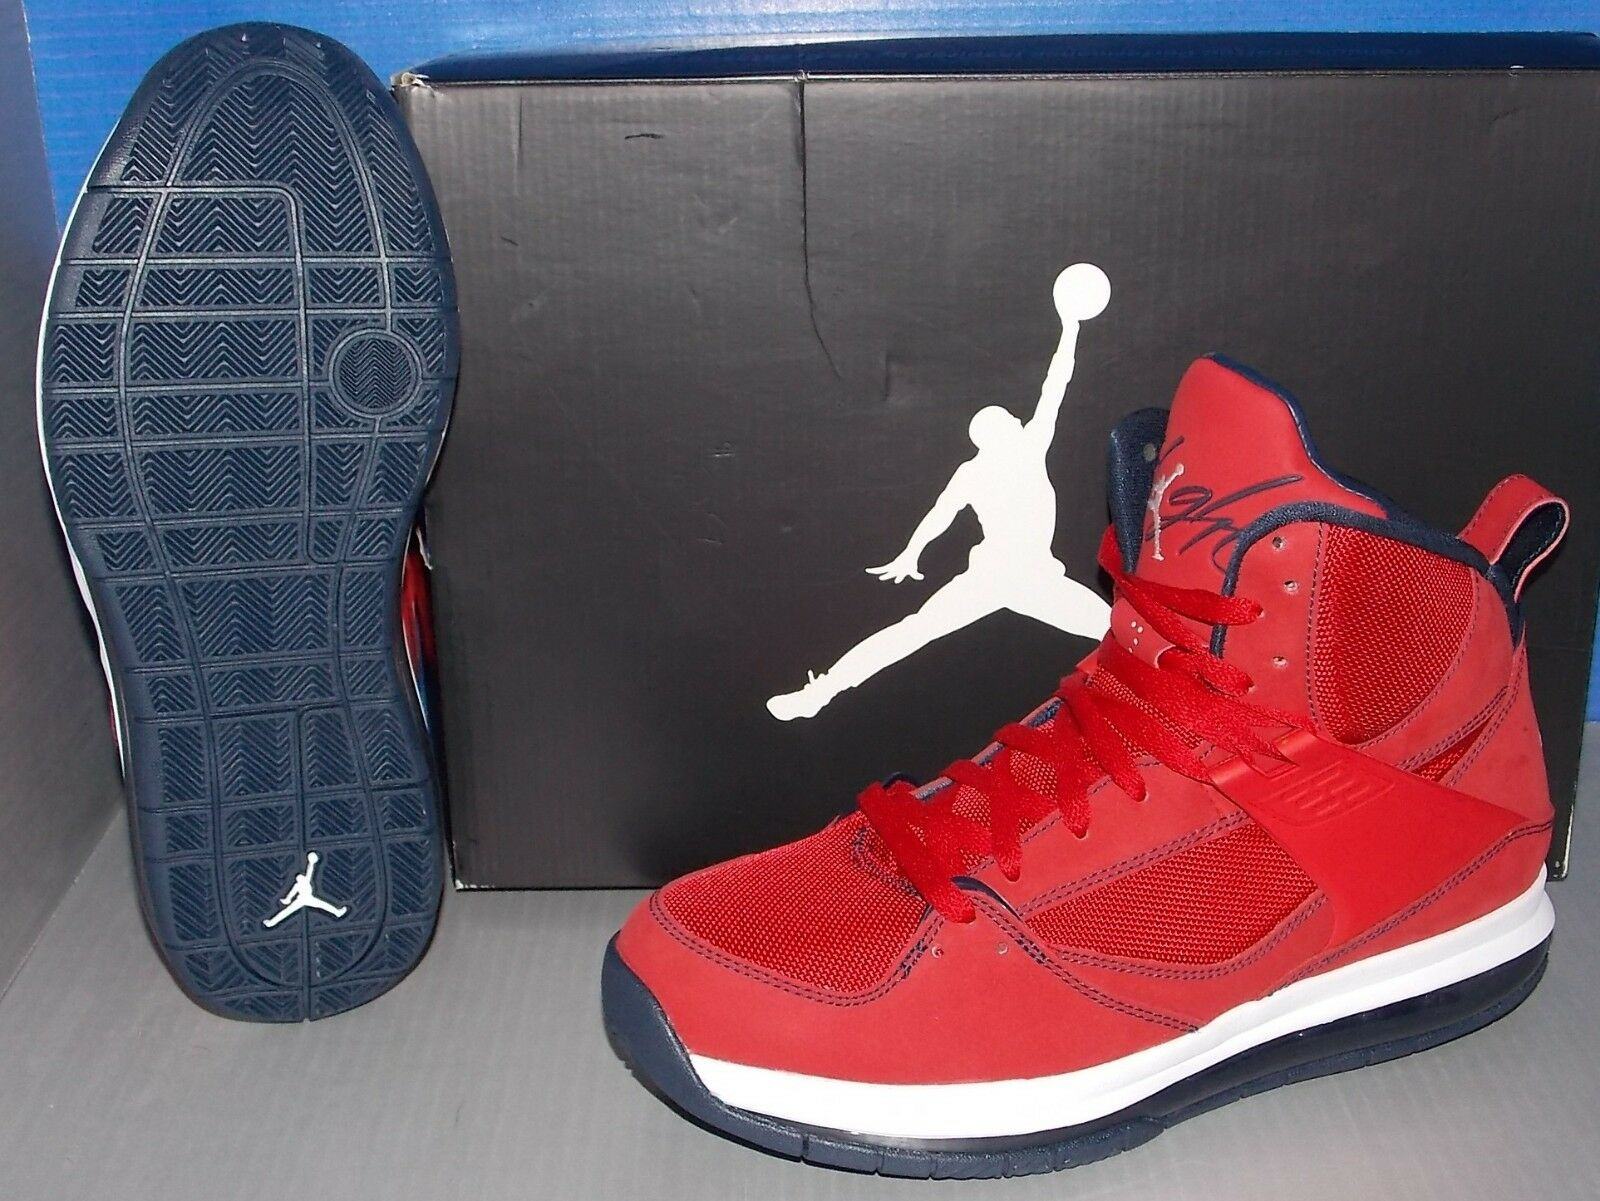 reputable site 8aacc df5c4 MENS NIKE JORDAN FLIGHT 45 HIGH MAX GYM RED   OBSIDIAN   WHITE SIZE 9.5 good